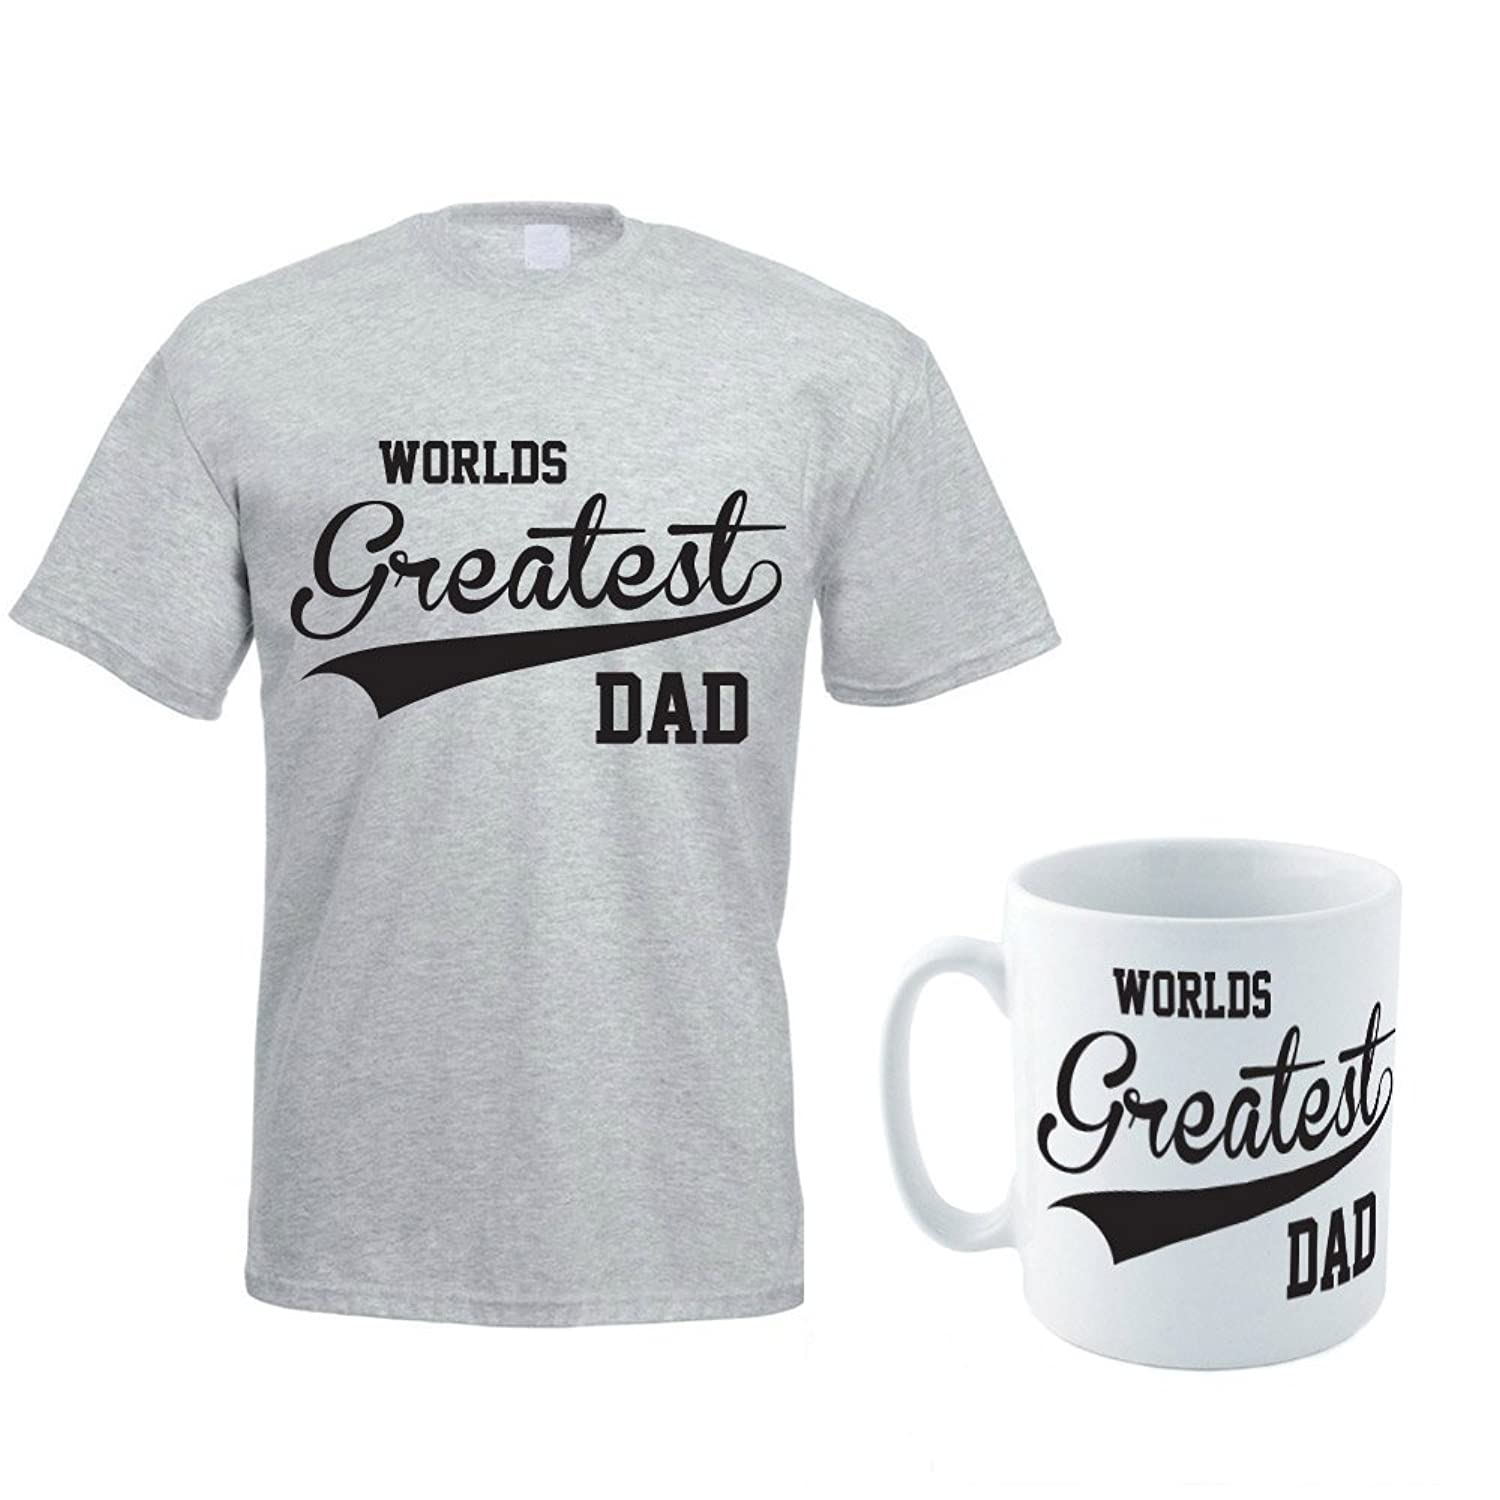 WORLDS GREATEST DAD - Father's Day / Daddy / Gift Idea / Men's T-shirt / Mug Set